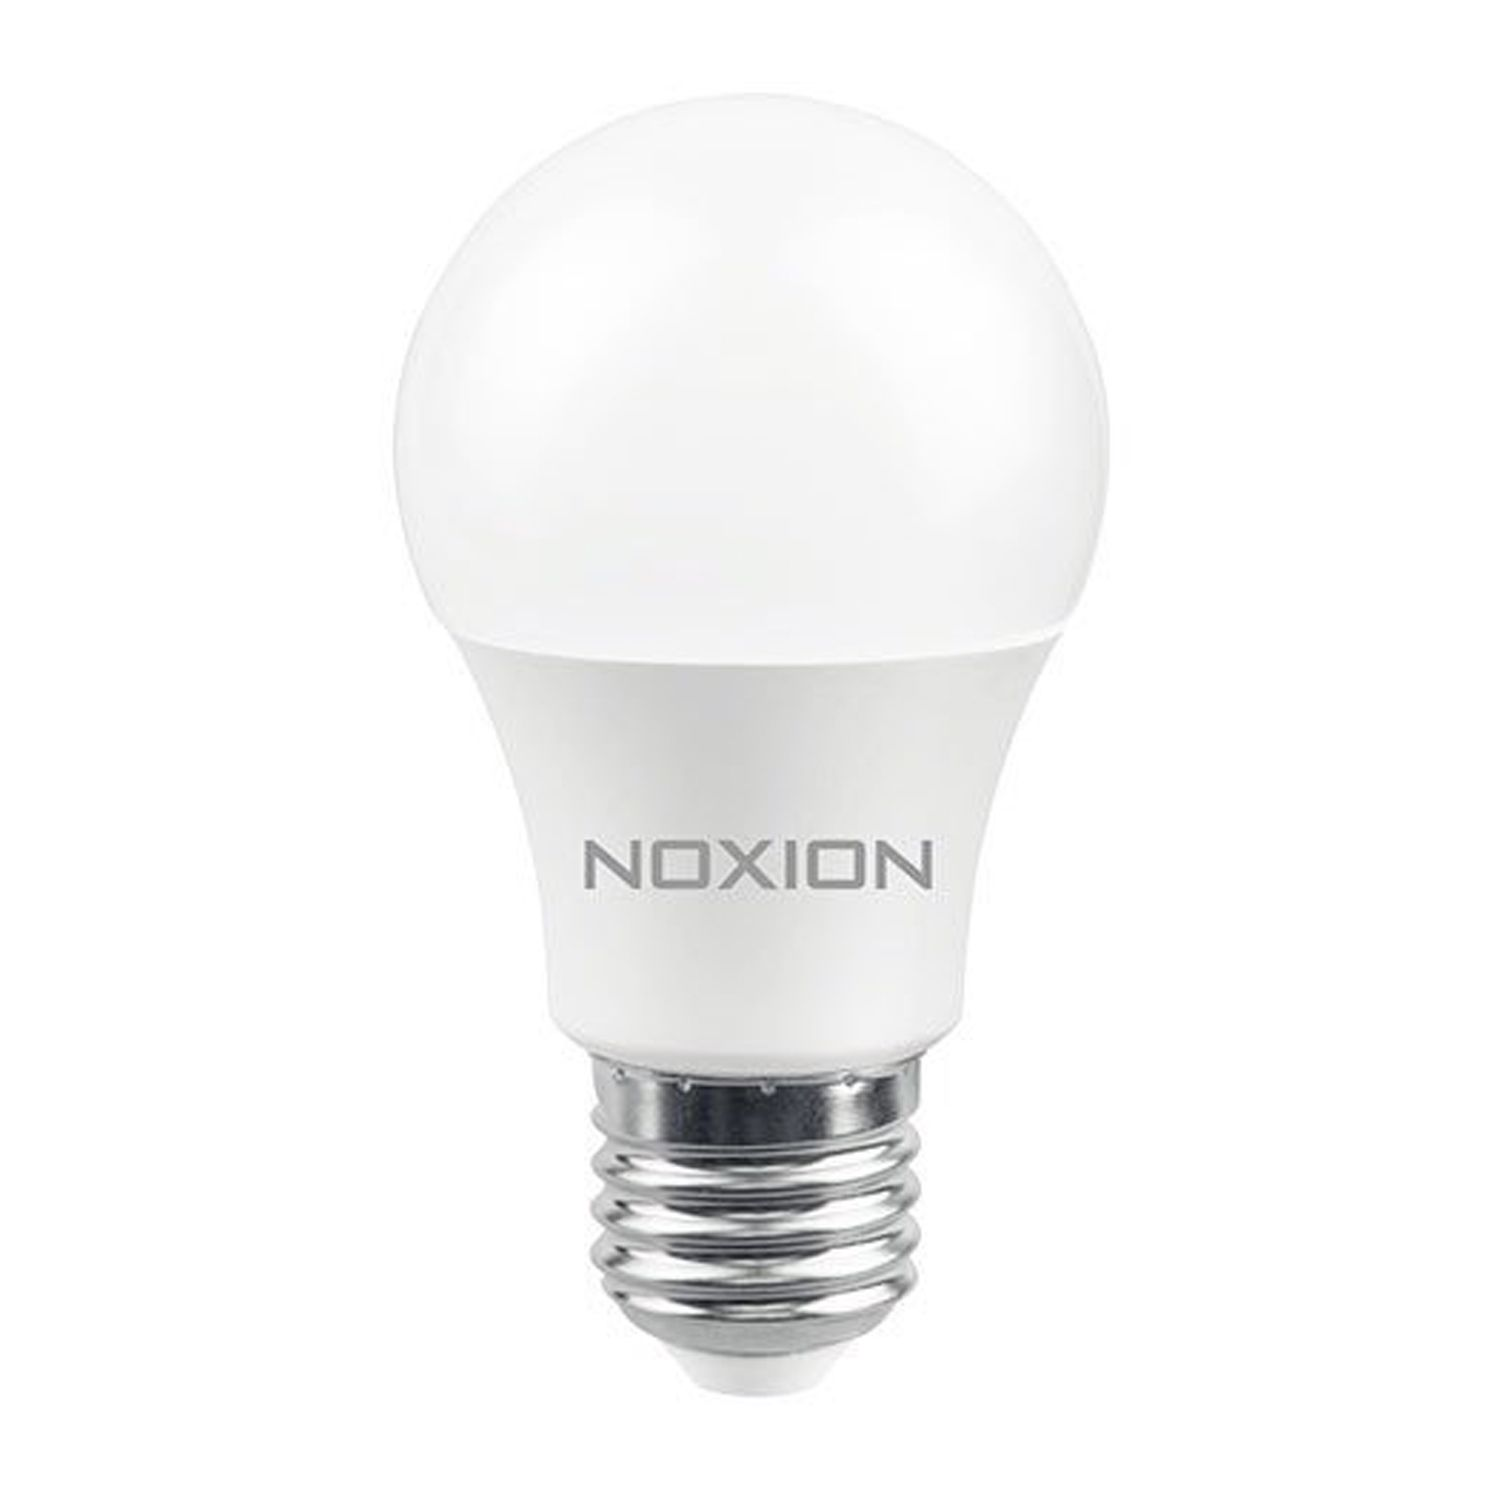 Noxion Lucent LED Classic 5.5W 827 A60 E27   Extra Warm White - Replaces 40W